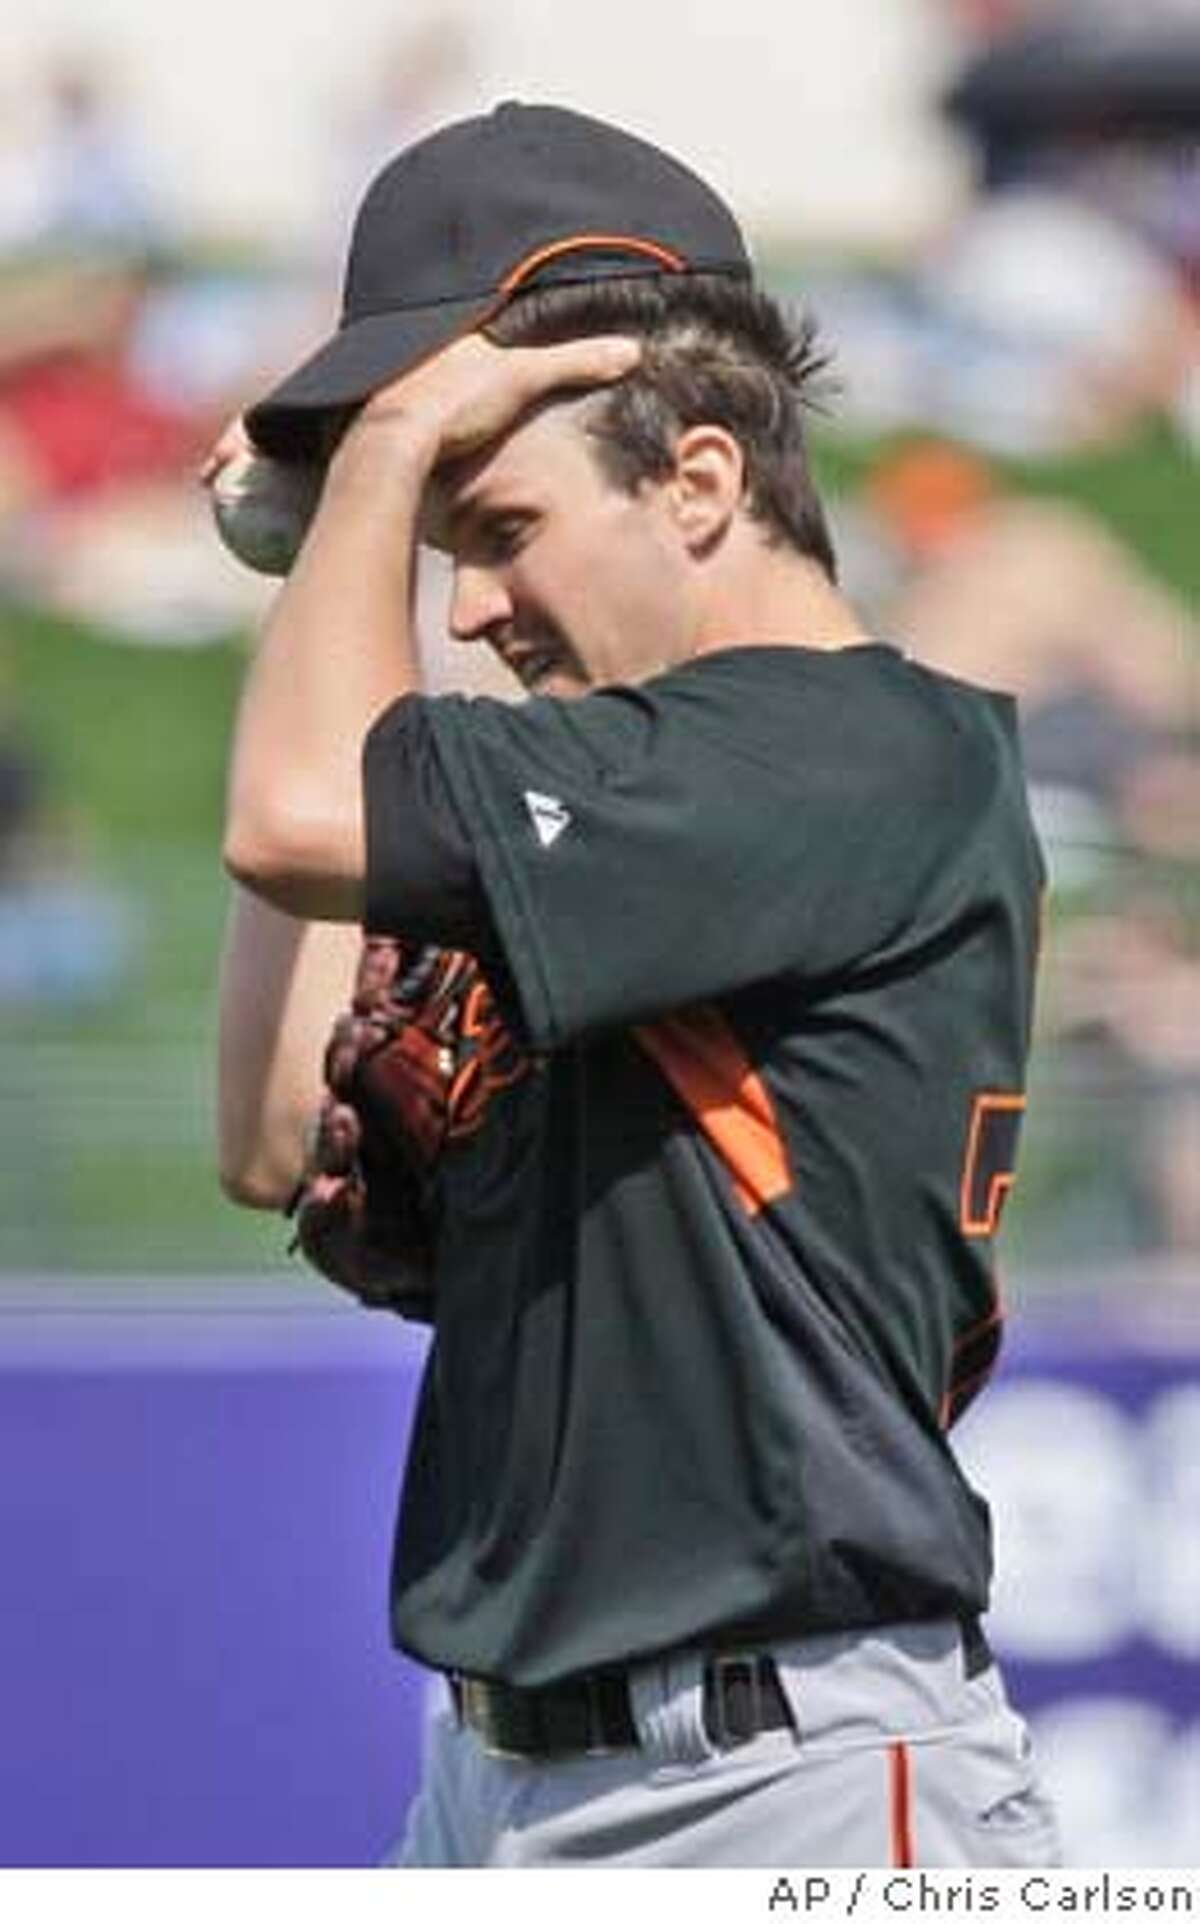 San Francisco Giants pitcher Barry Zito wipes his face after giving up his third run to the Kansas City Royals in the third inning during a spring training baseball game in Surprise, Ariz., Monday, March 10, 2008. (AP Photo/Chris Carlson)